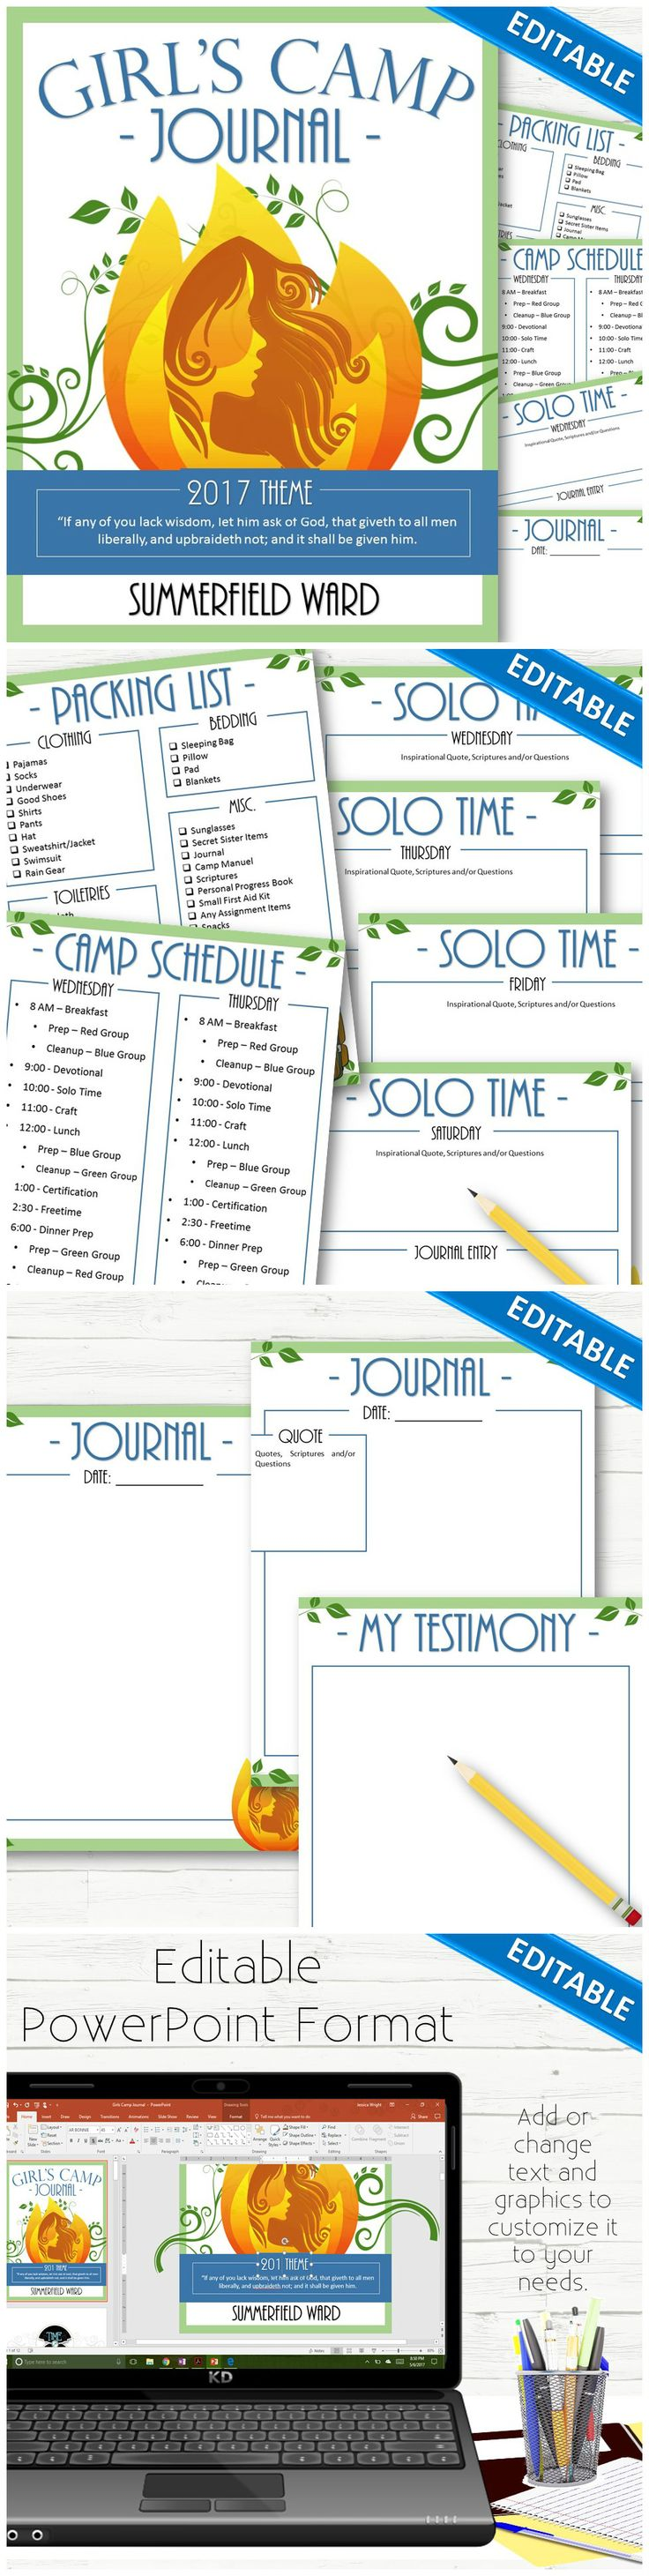 A completely editable Young Women Girls Camp book! Comes in fillable PDF format AND a PowerPoint format so you can change text, fonts, graphics, etc. to customize it to your own theme and needs.   Contents Include: - Cover - Packing List - Camp Schedule - Solo Time Pages (with an area for quotes, prompts and journaling) - Journaling Pages - Testimony Page - Secret Sister or All About Me Questionnaire